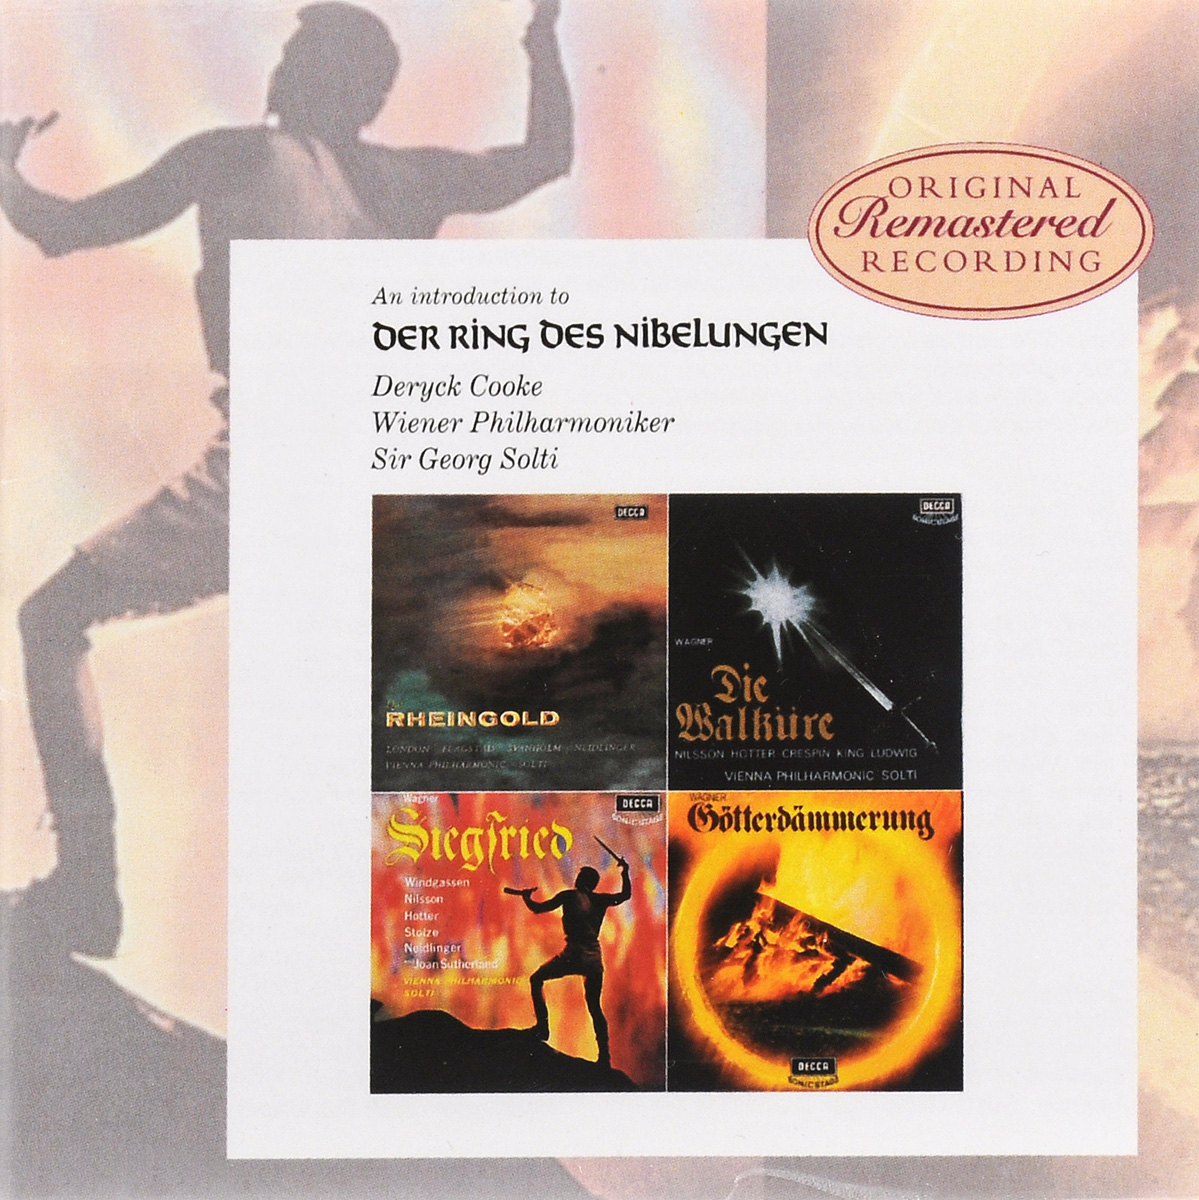 Георг Шолти,Wiener Philharmoniker,Deryck Cooke Sir Georg Solti. Richard Wagner. An Introduction On Der Ring Des Nibelungen (2 CD) bailey richard wagner prelude